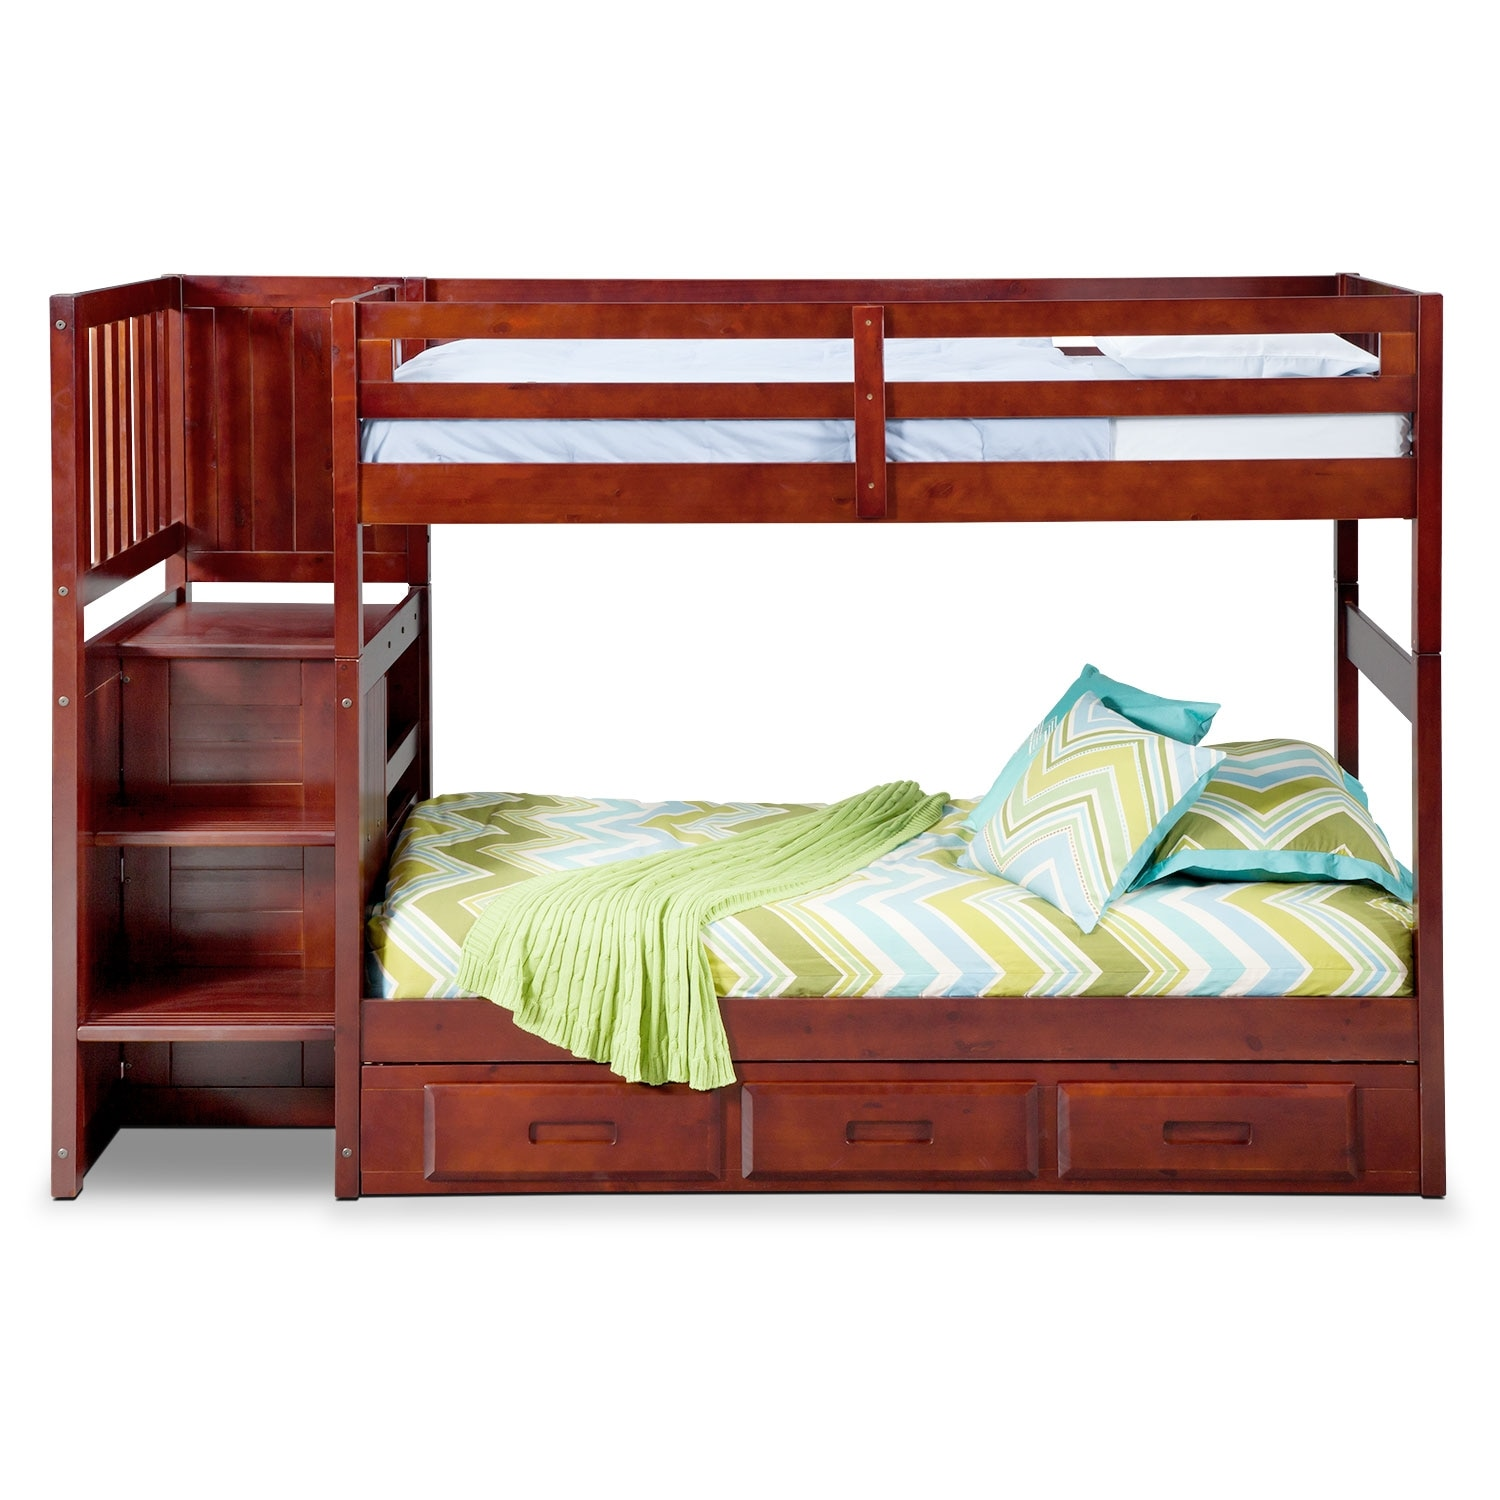 Ranger twin over twin bunk bed with storage stairs underbed drawers merlot american - Bunk bed with drawer steps ...